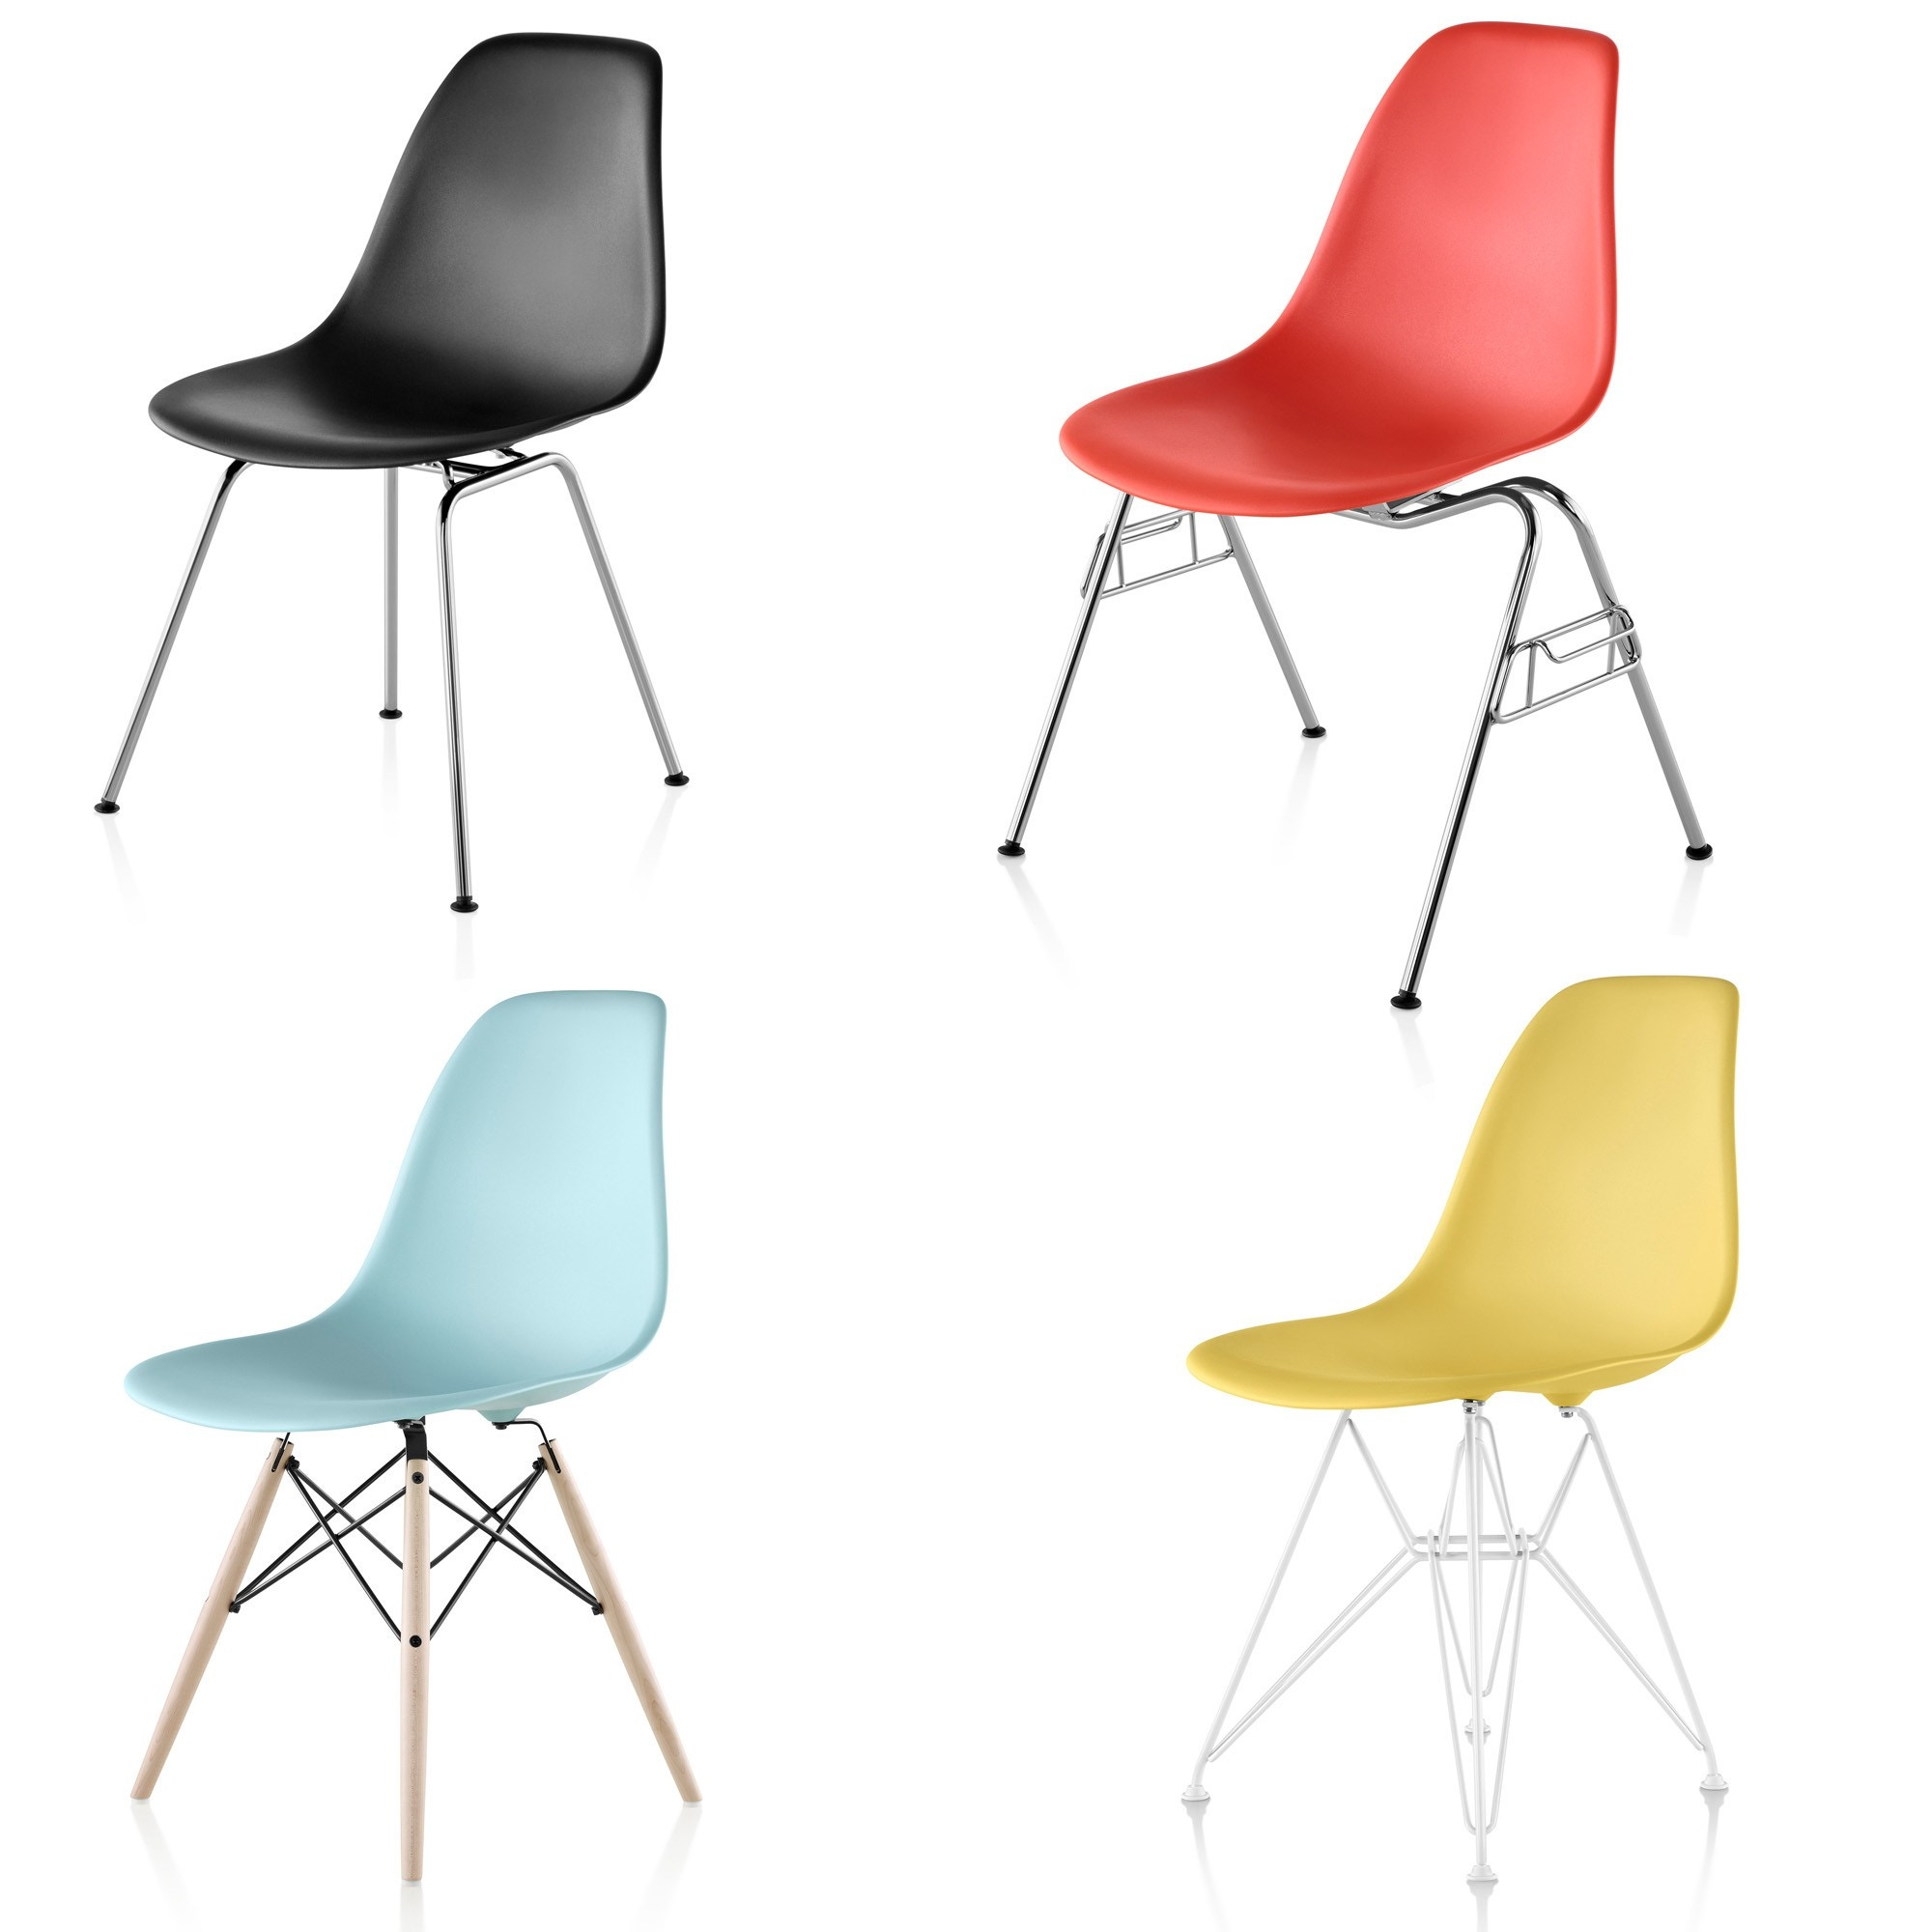 Herman Miller Eames Molded Plastic Chair herman miller eames® molded plastic side chair - gr shop canada